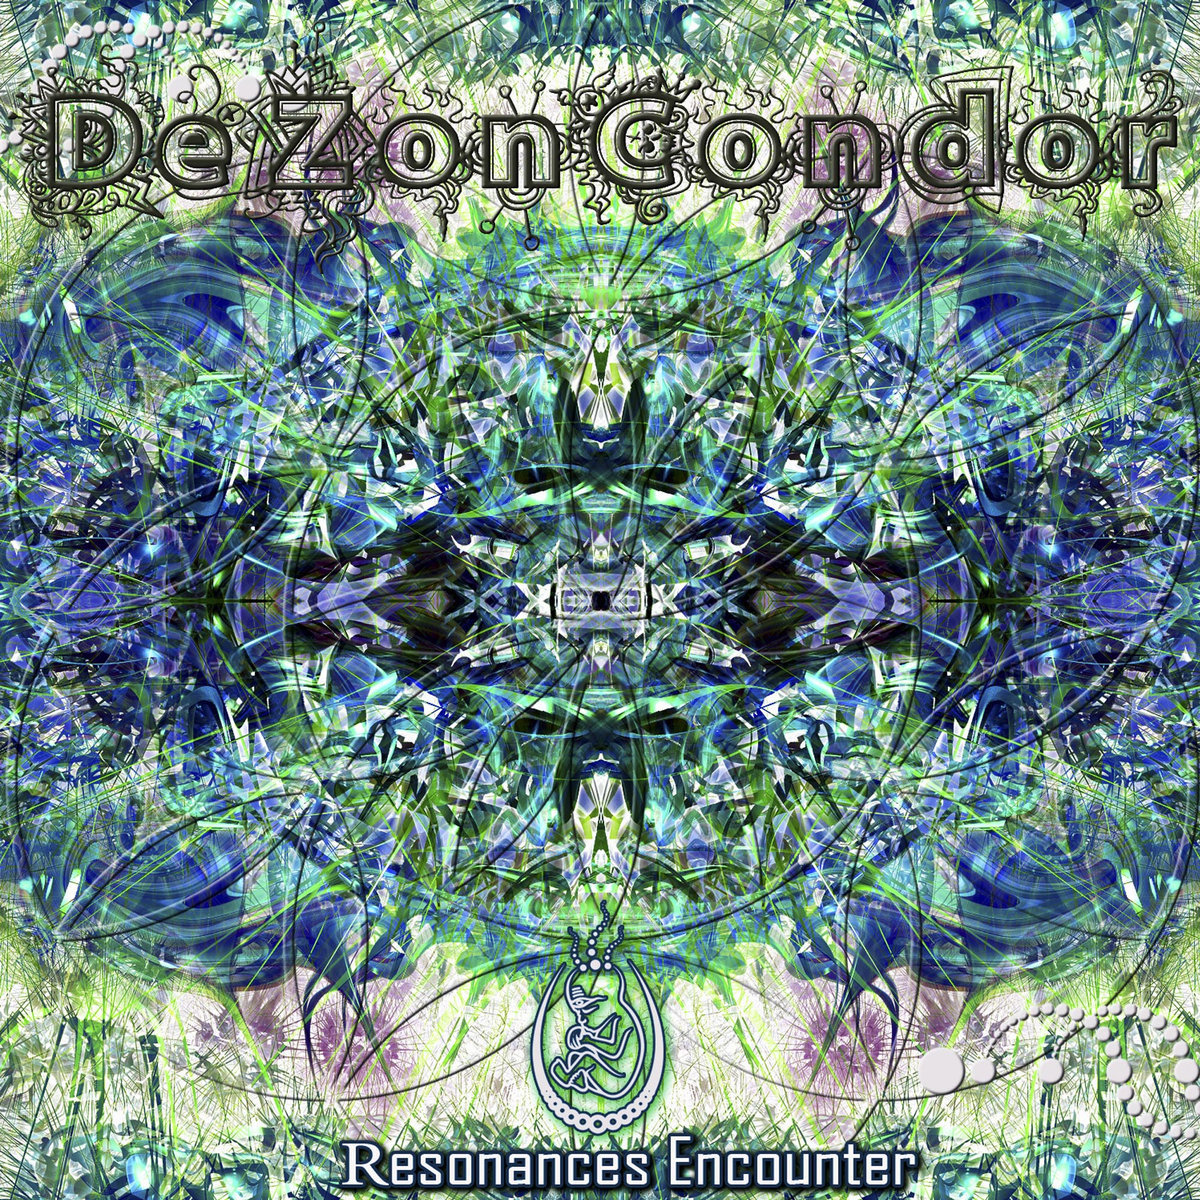 DezonCondor - Ceremony @ 'Resonances Encounter' album (ambient, electronic)